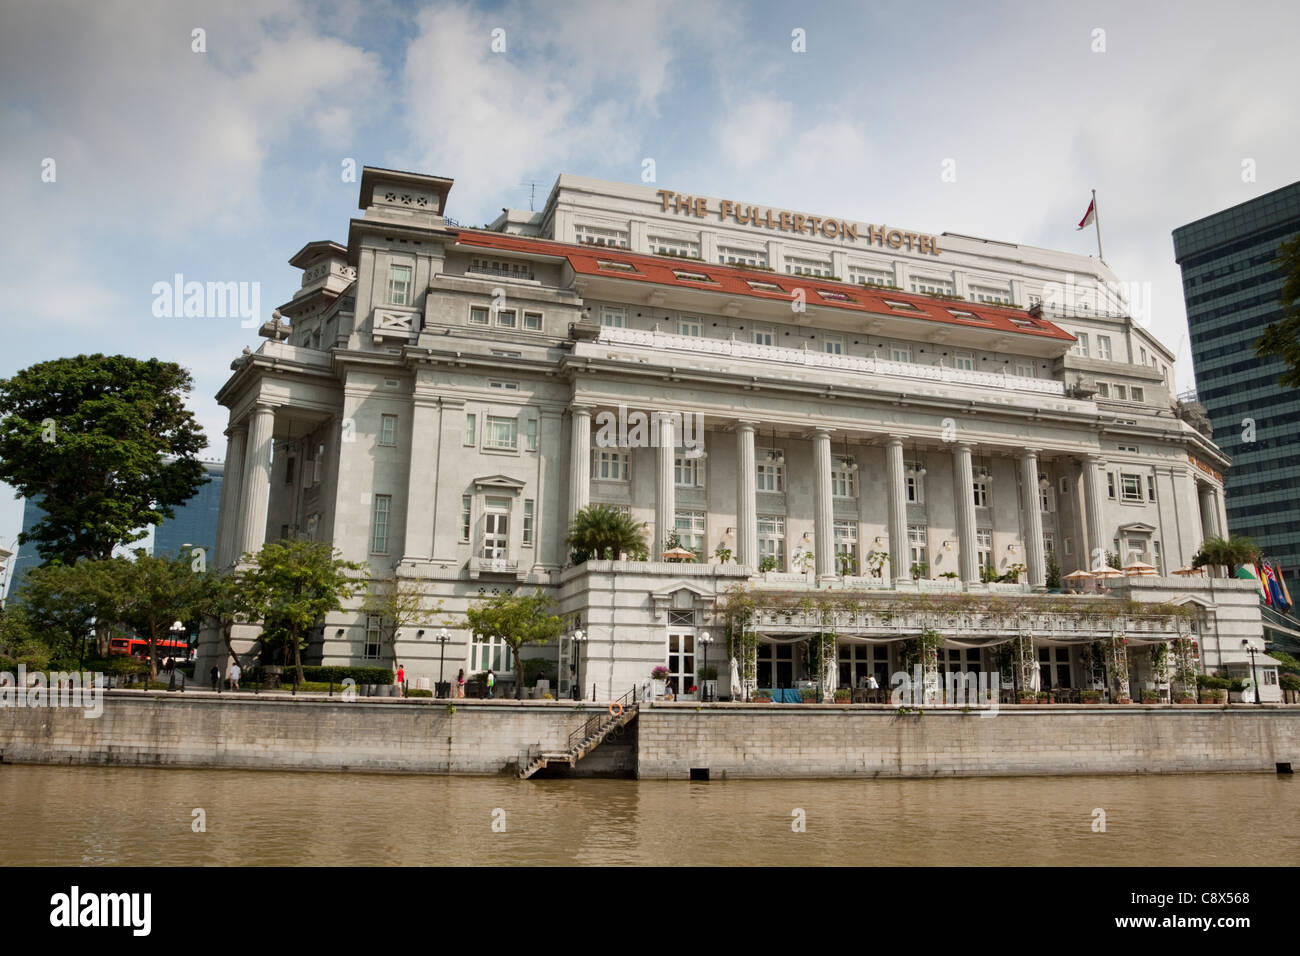 The Fullerton Hotel, Singapore - Stock Image